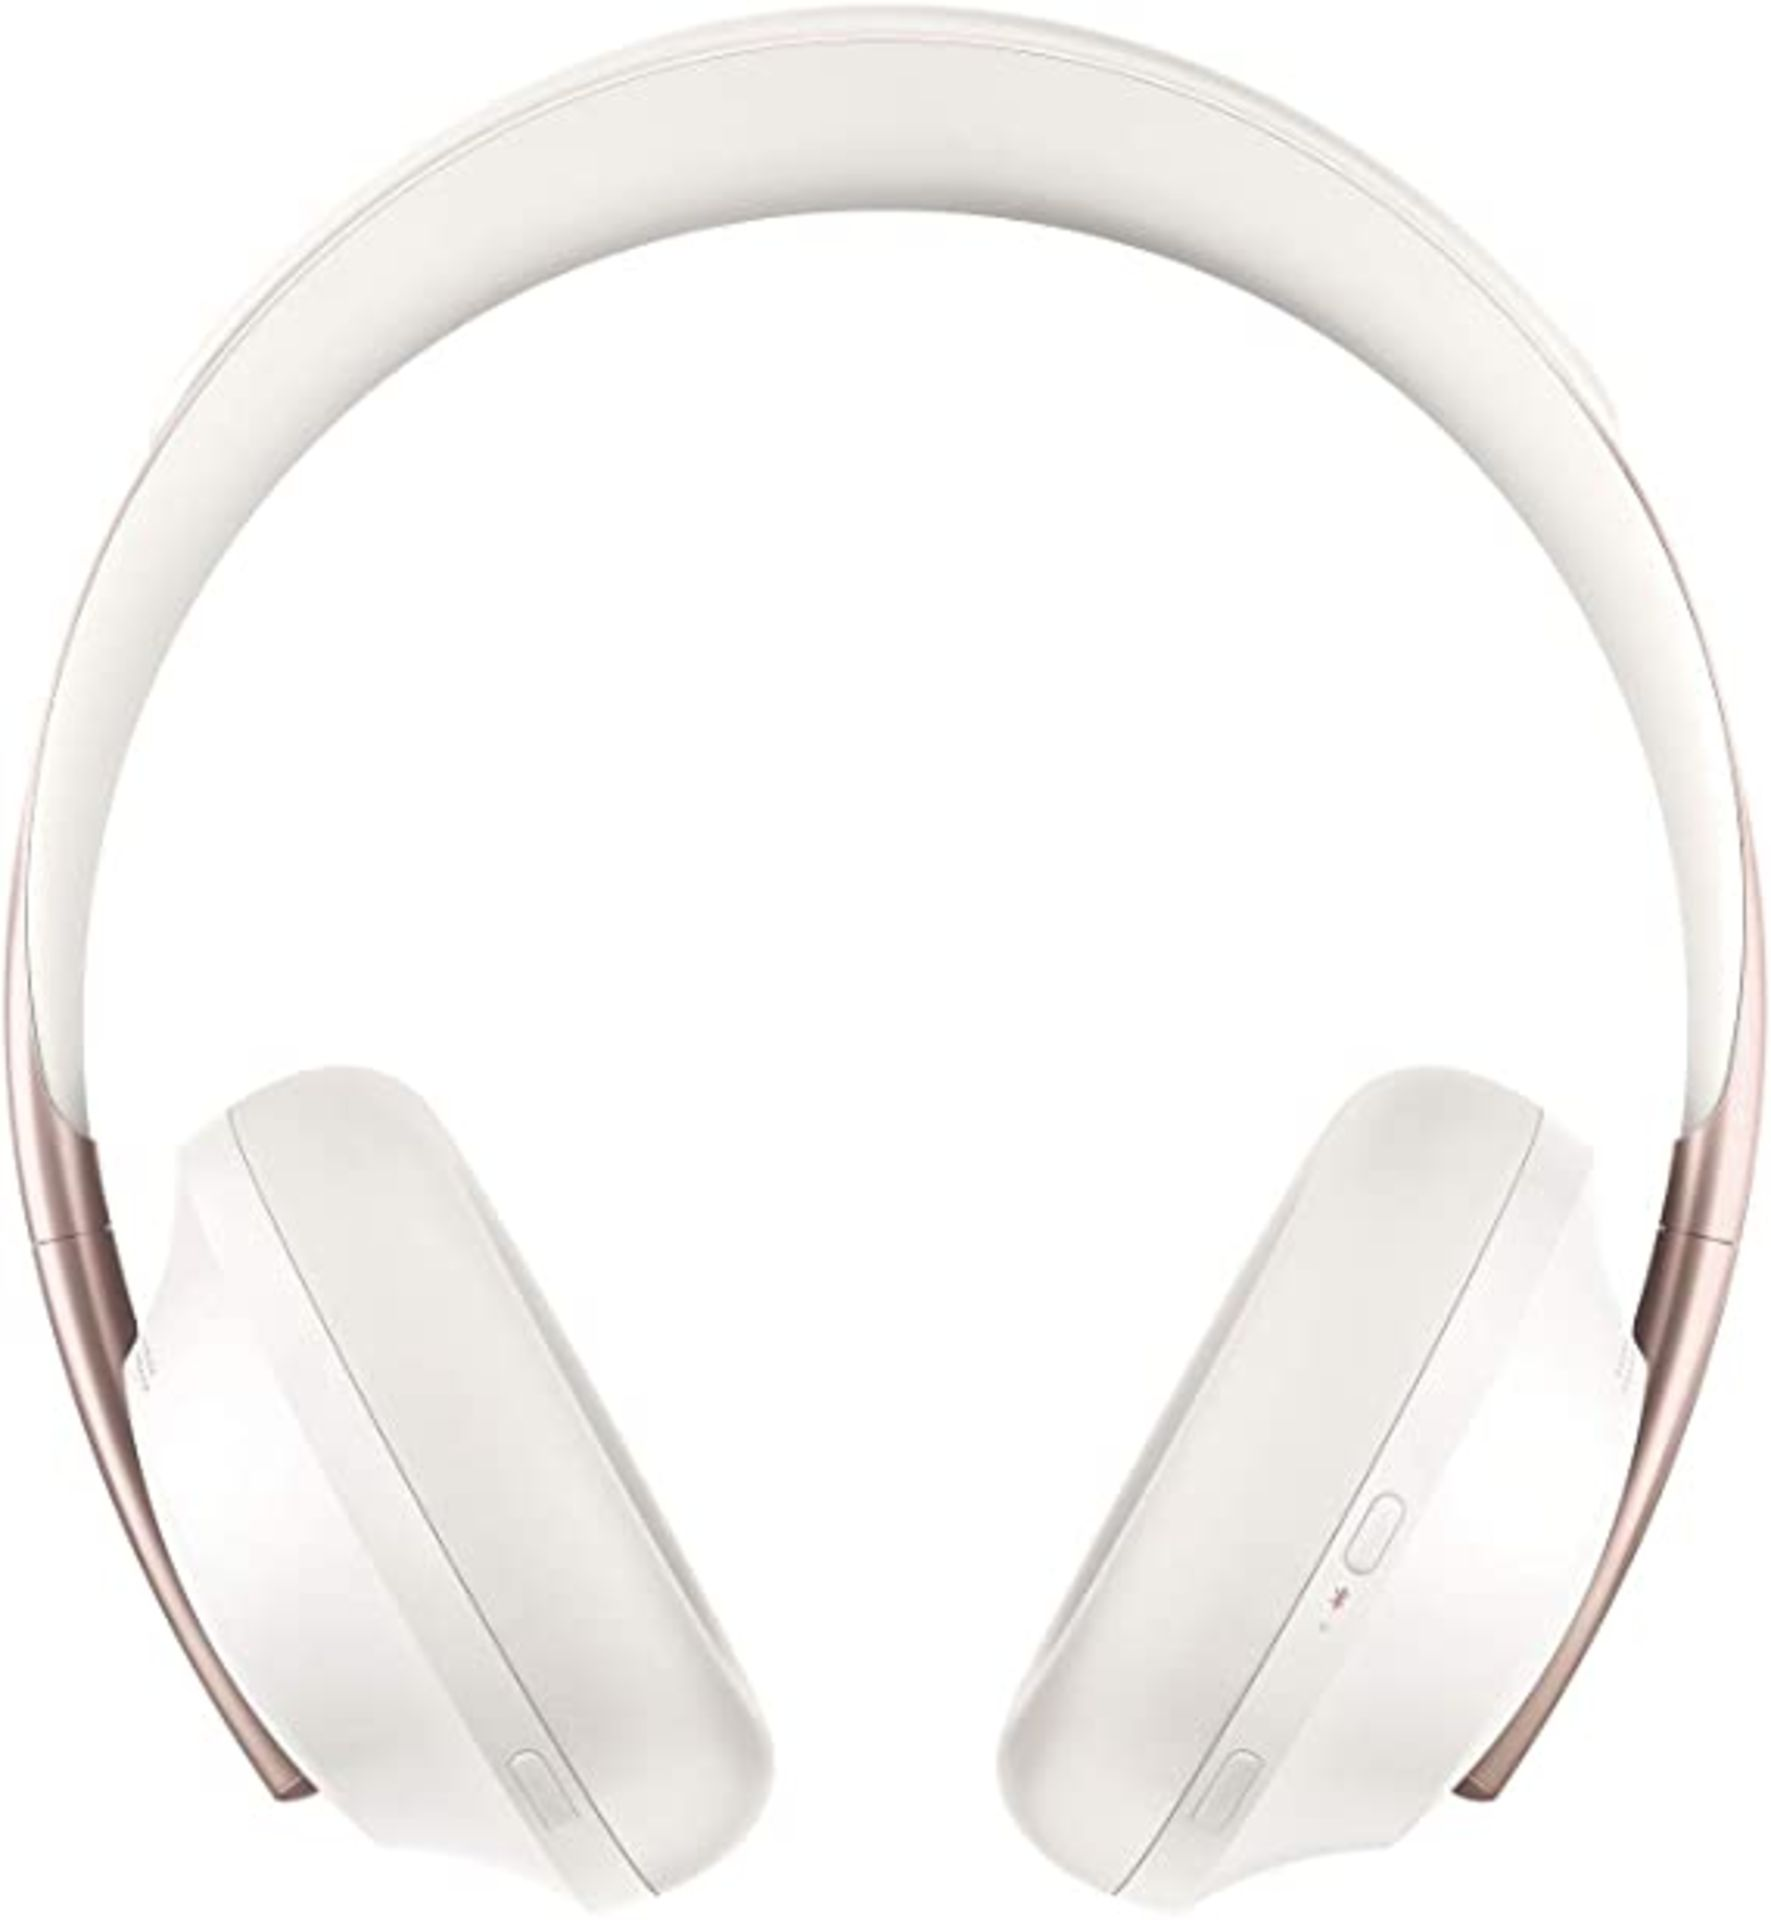 + VAT Brand New Bose Noise Cancelling Headphones 700 - Over Ear - Wireless Bluetooth - Microphone